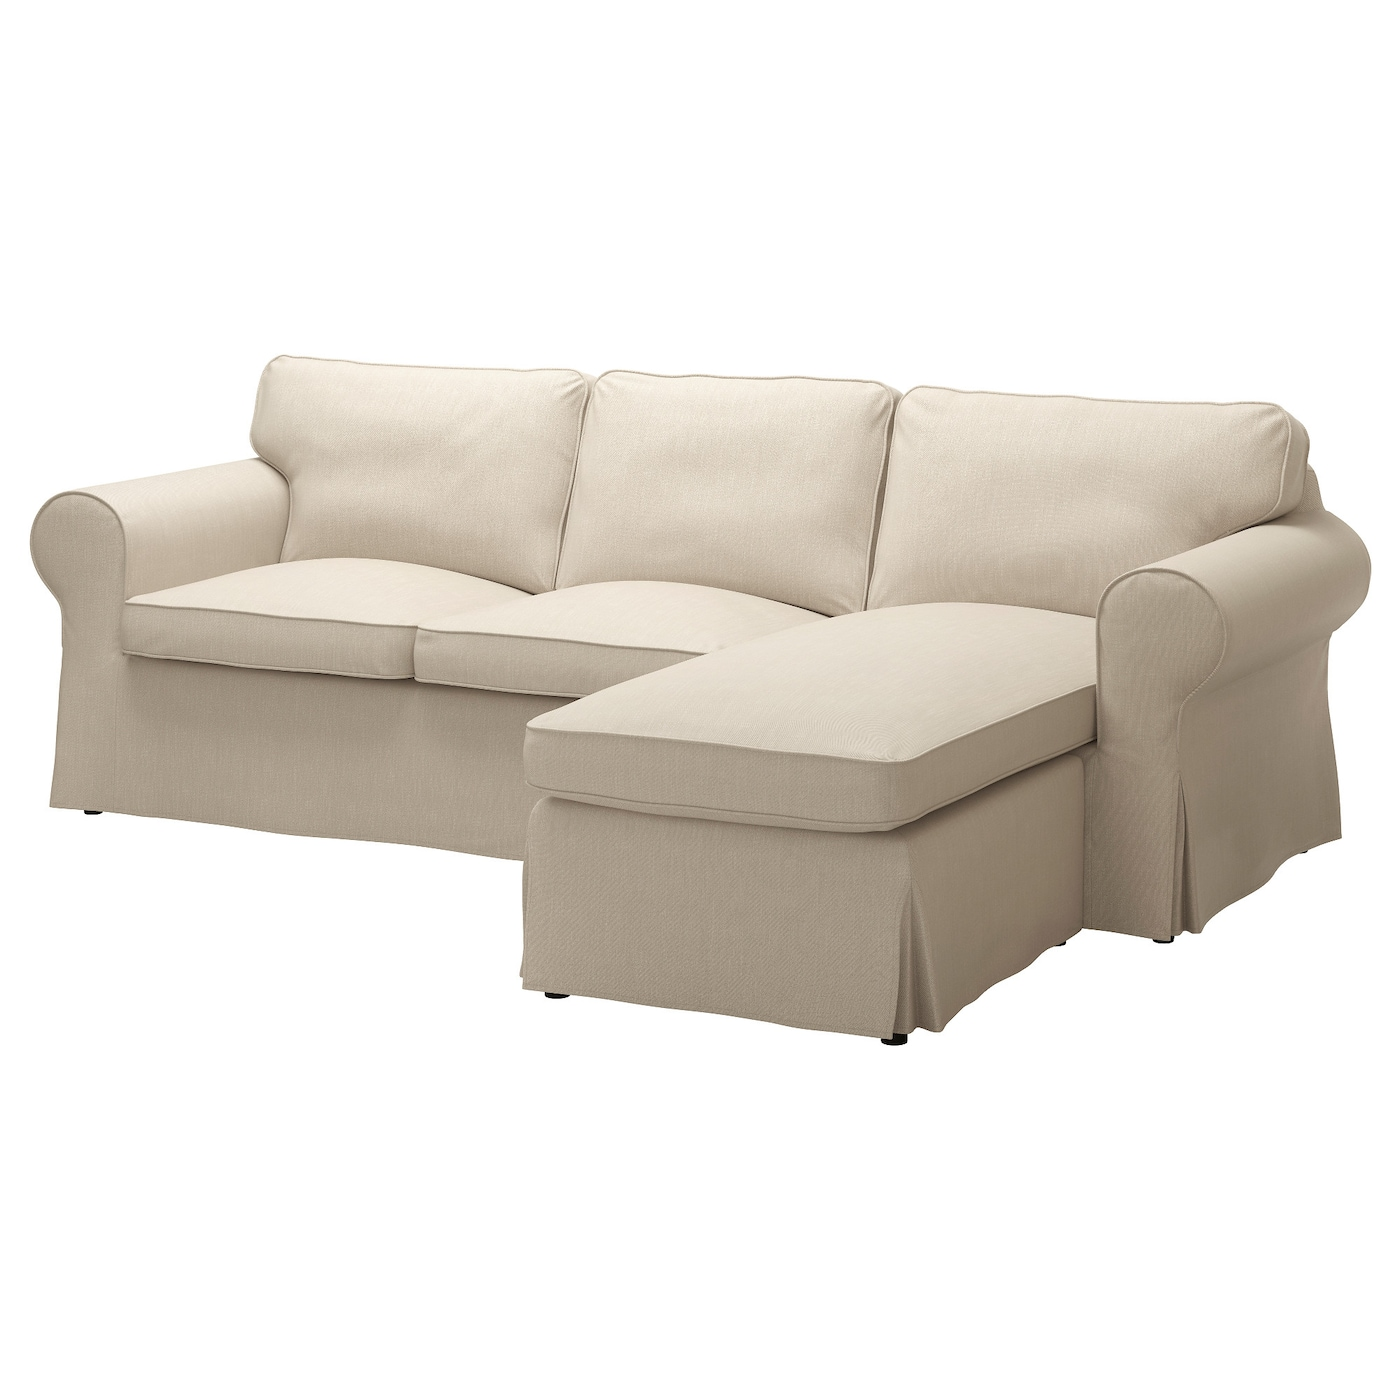 Ektorp 3 seat sofa with chaise longue nordvalla dark beige for 3 seat sofa with chaise